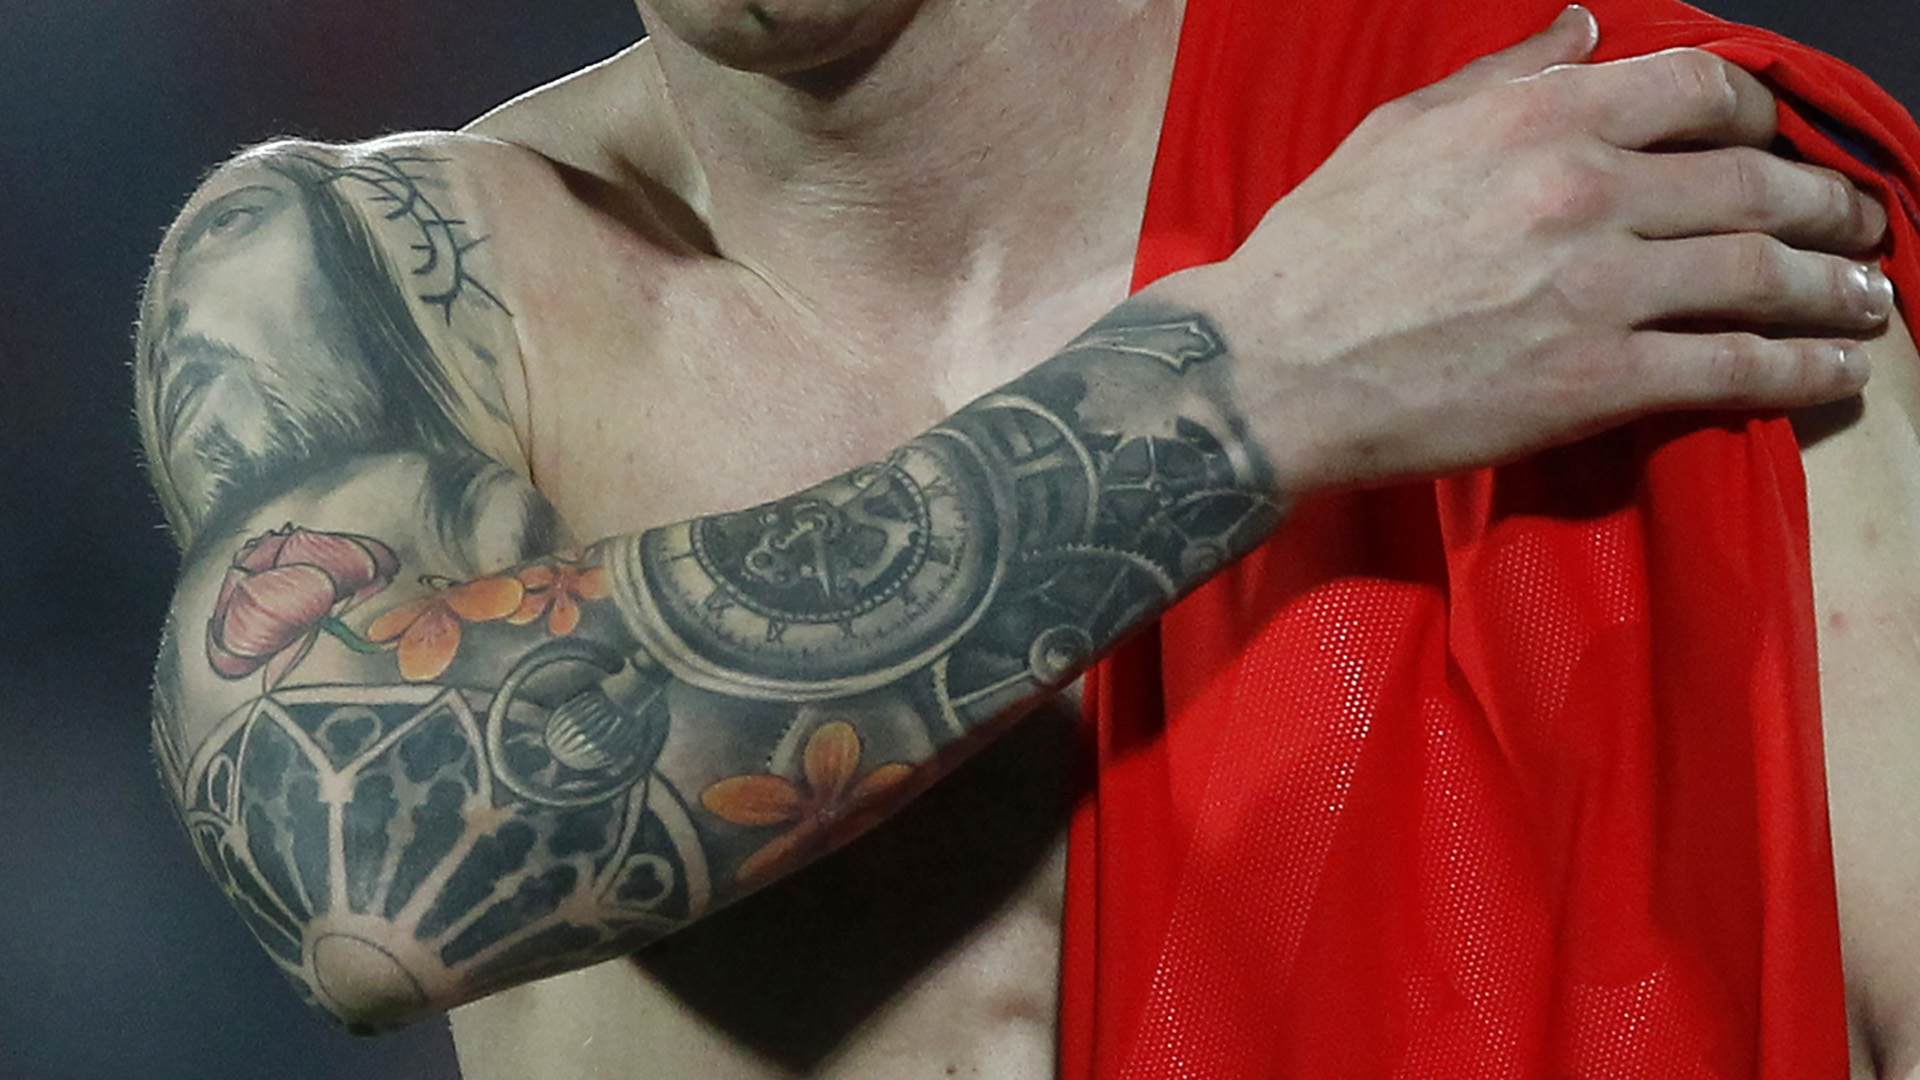 Messi S Tattoos: Lionel Messi's Tattoos Explained: What Do They Mean